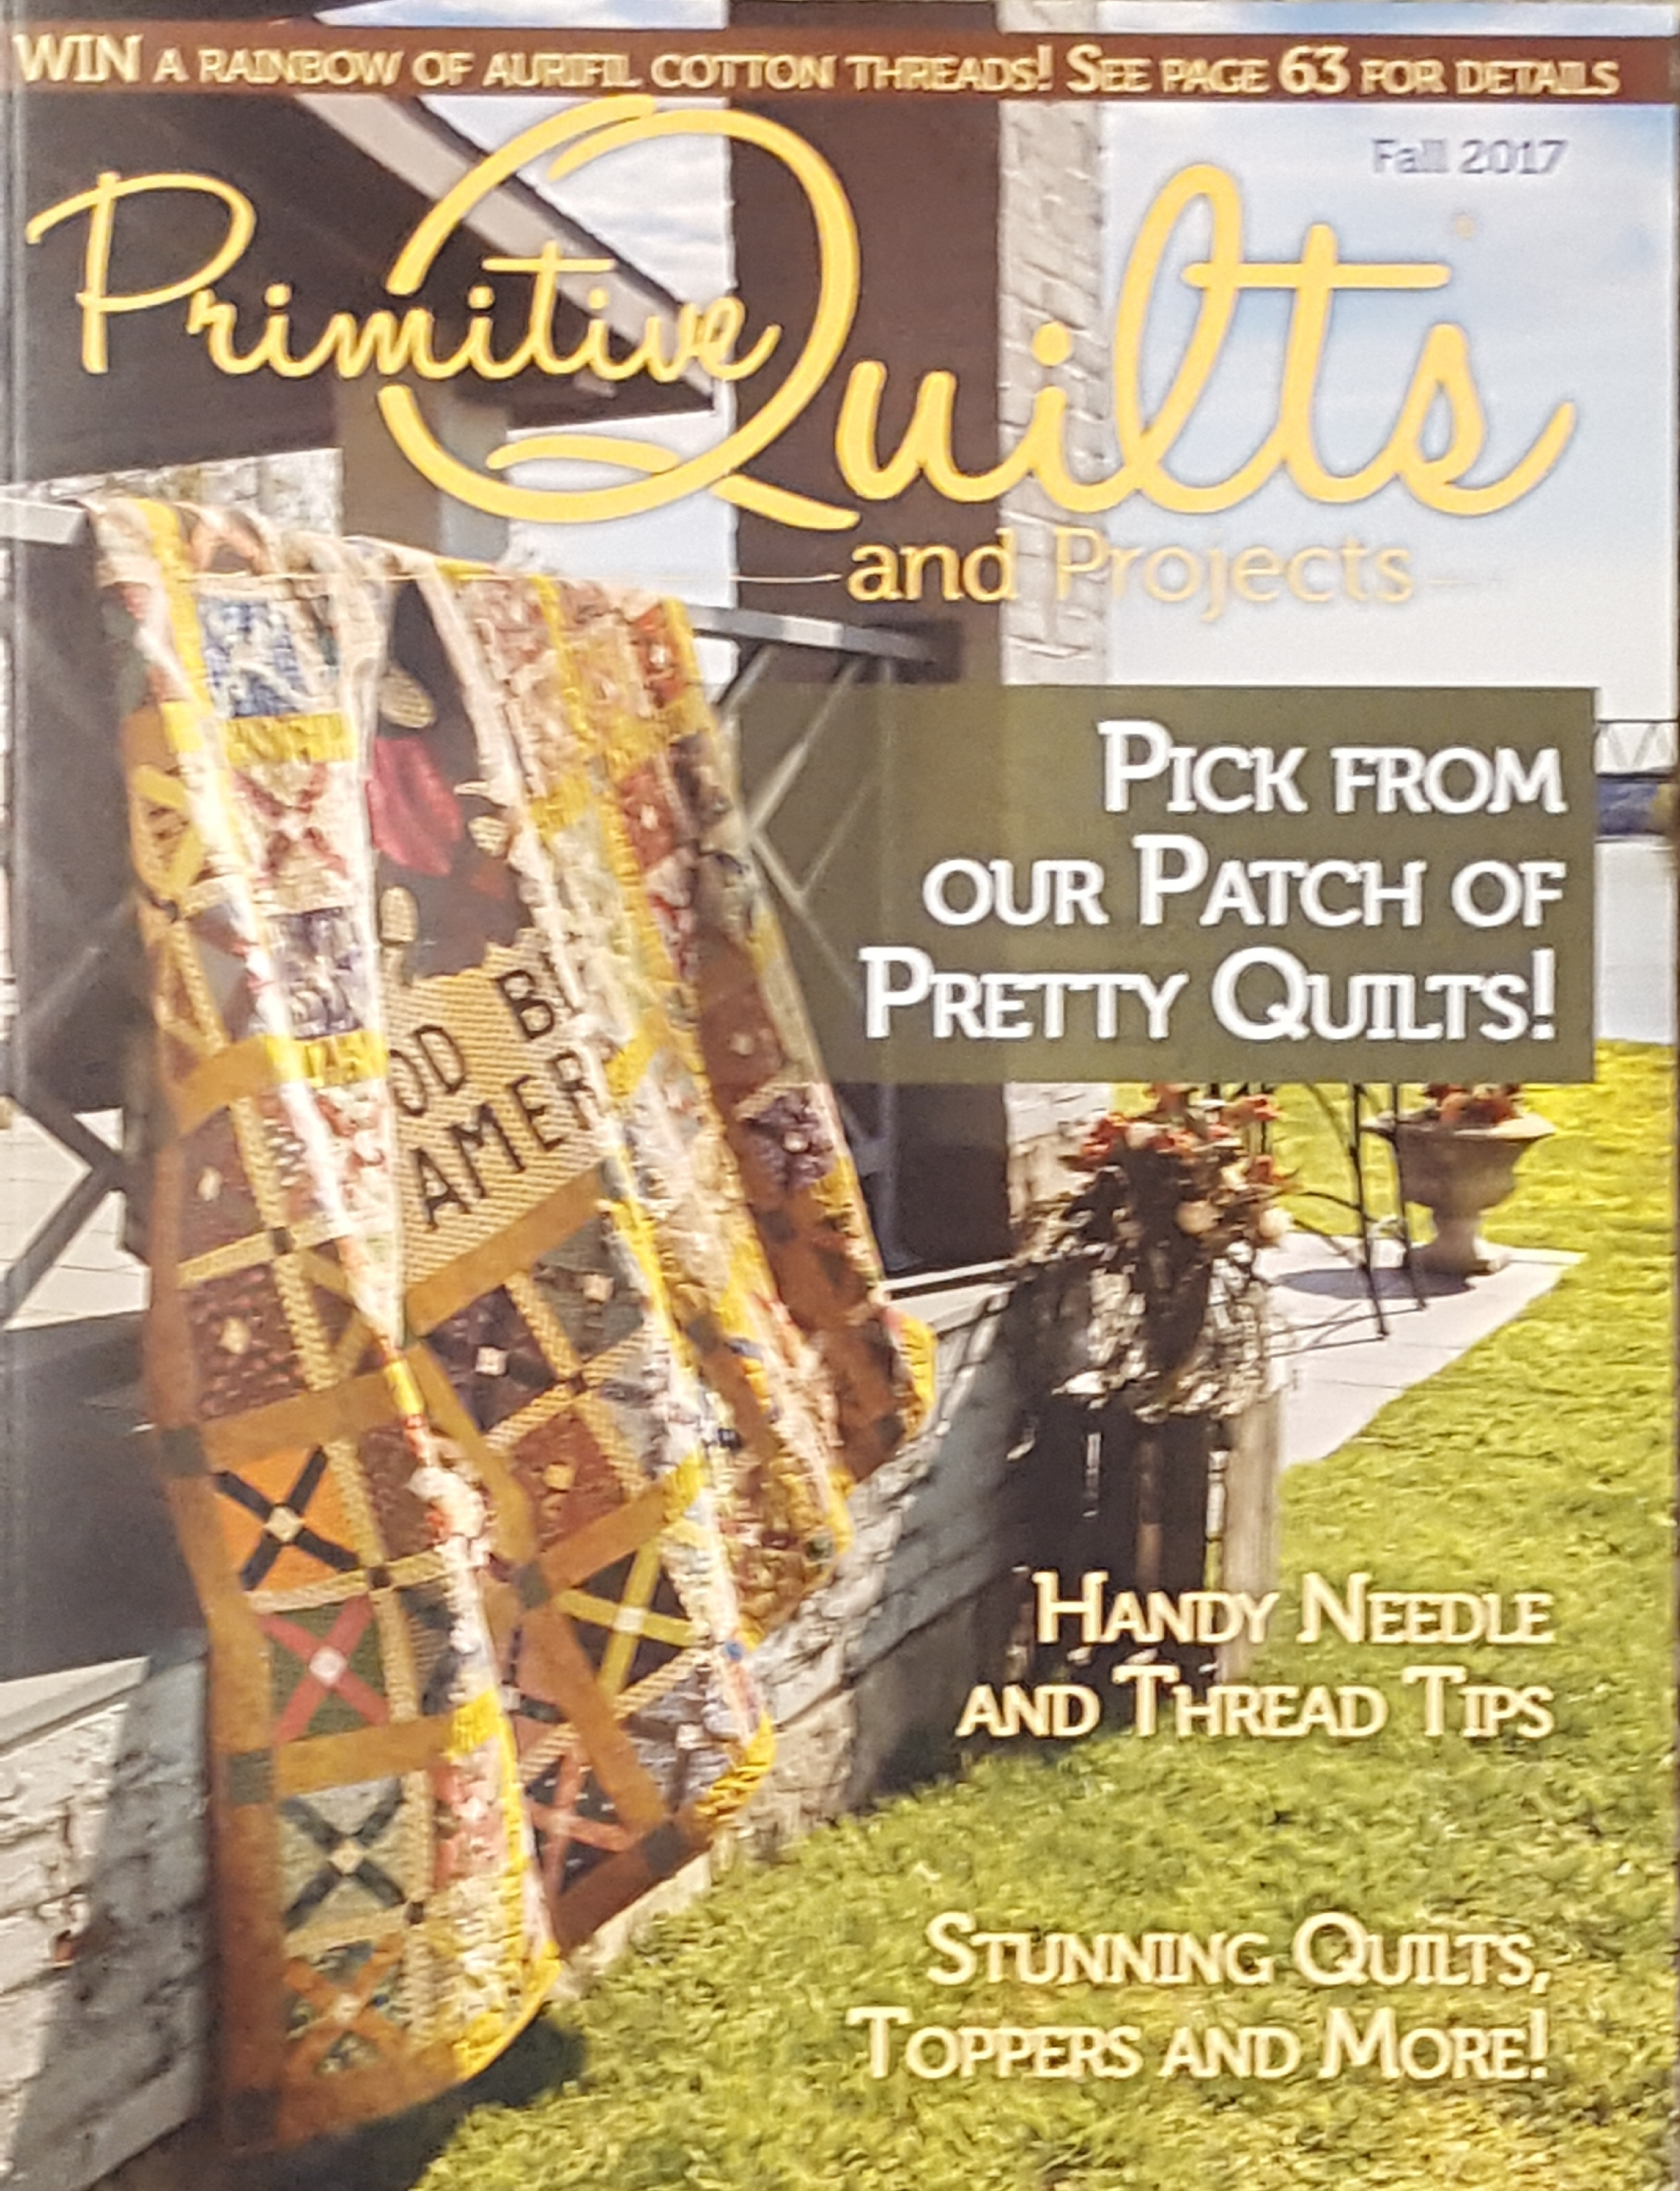 Primitive Quilts & Projects Magazine Fall 2017 | Yellow Creek ... : primitive quilts and projects - Adamdwight.com